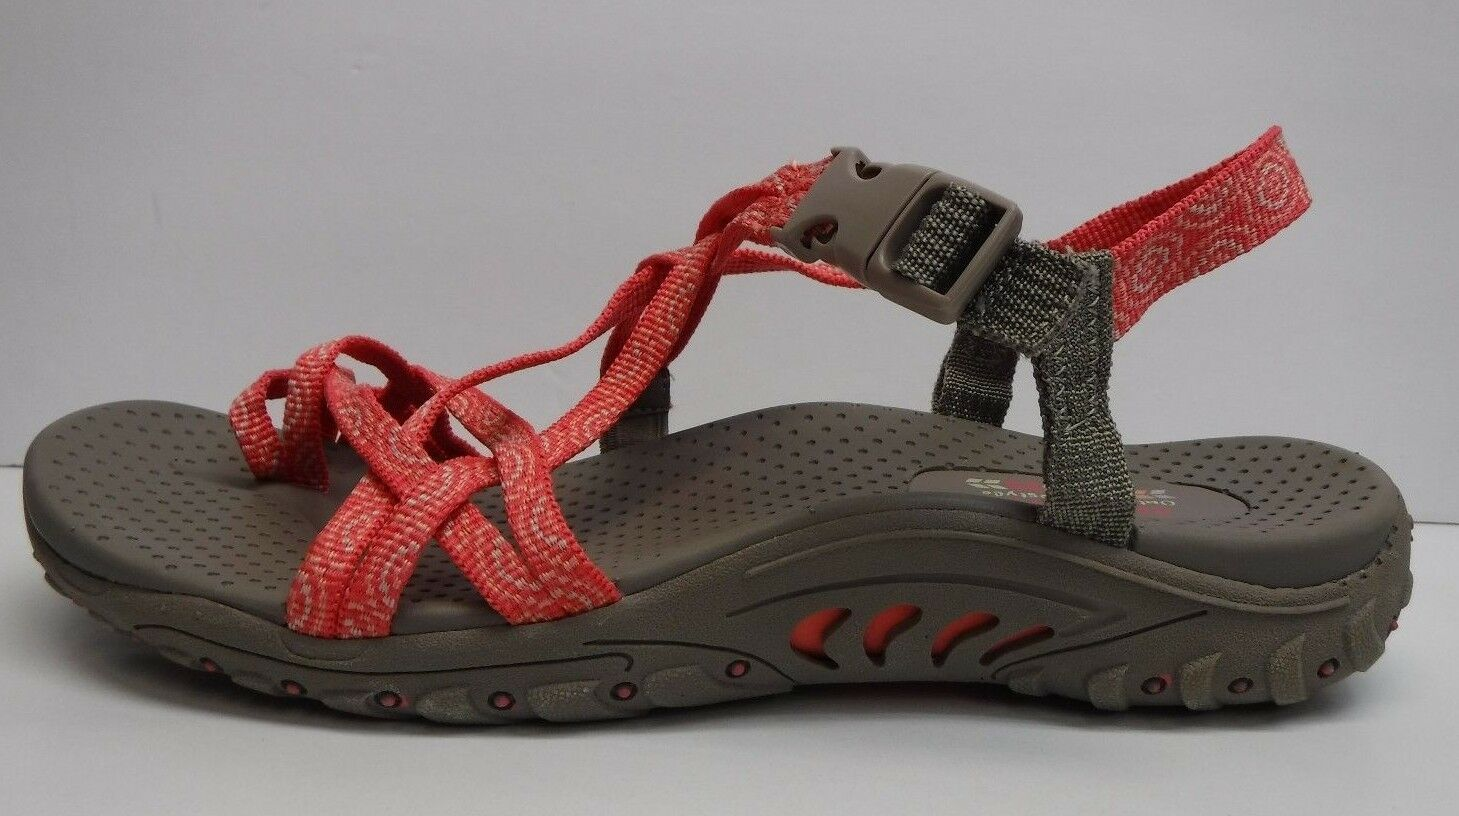 Skechers Size 10 Red Sandals New Donna Shoes